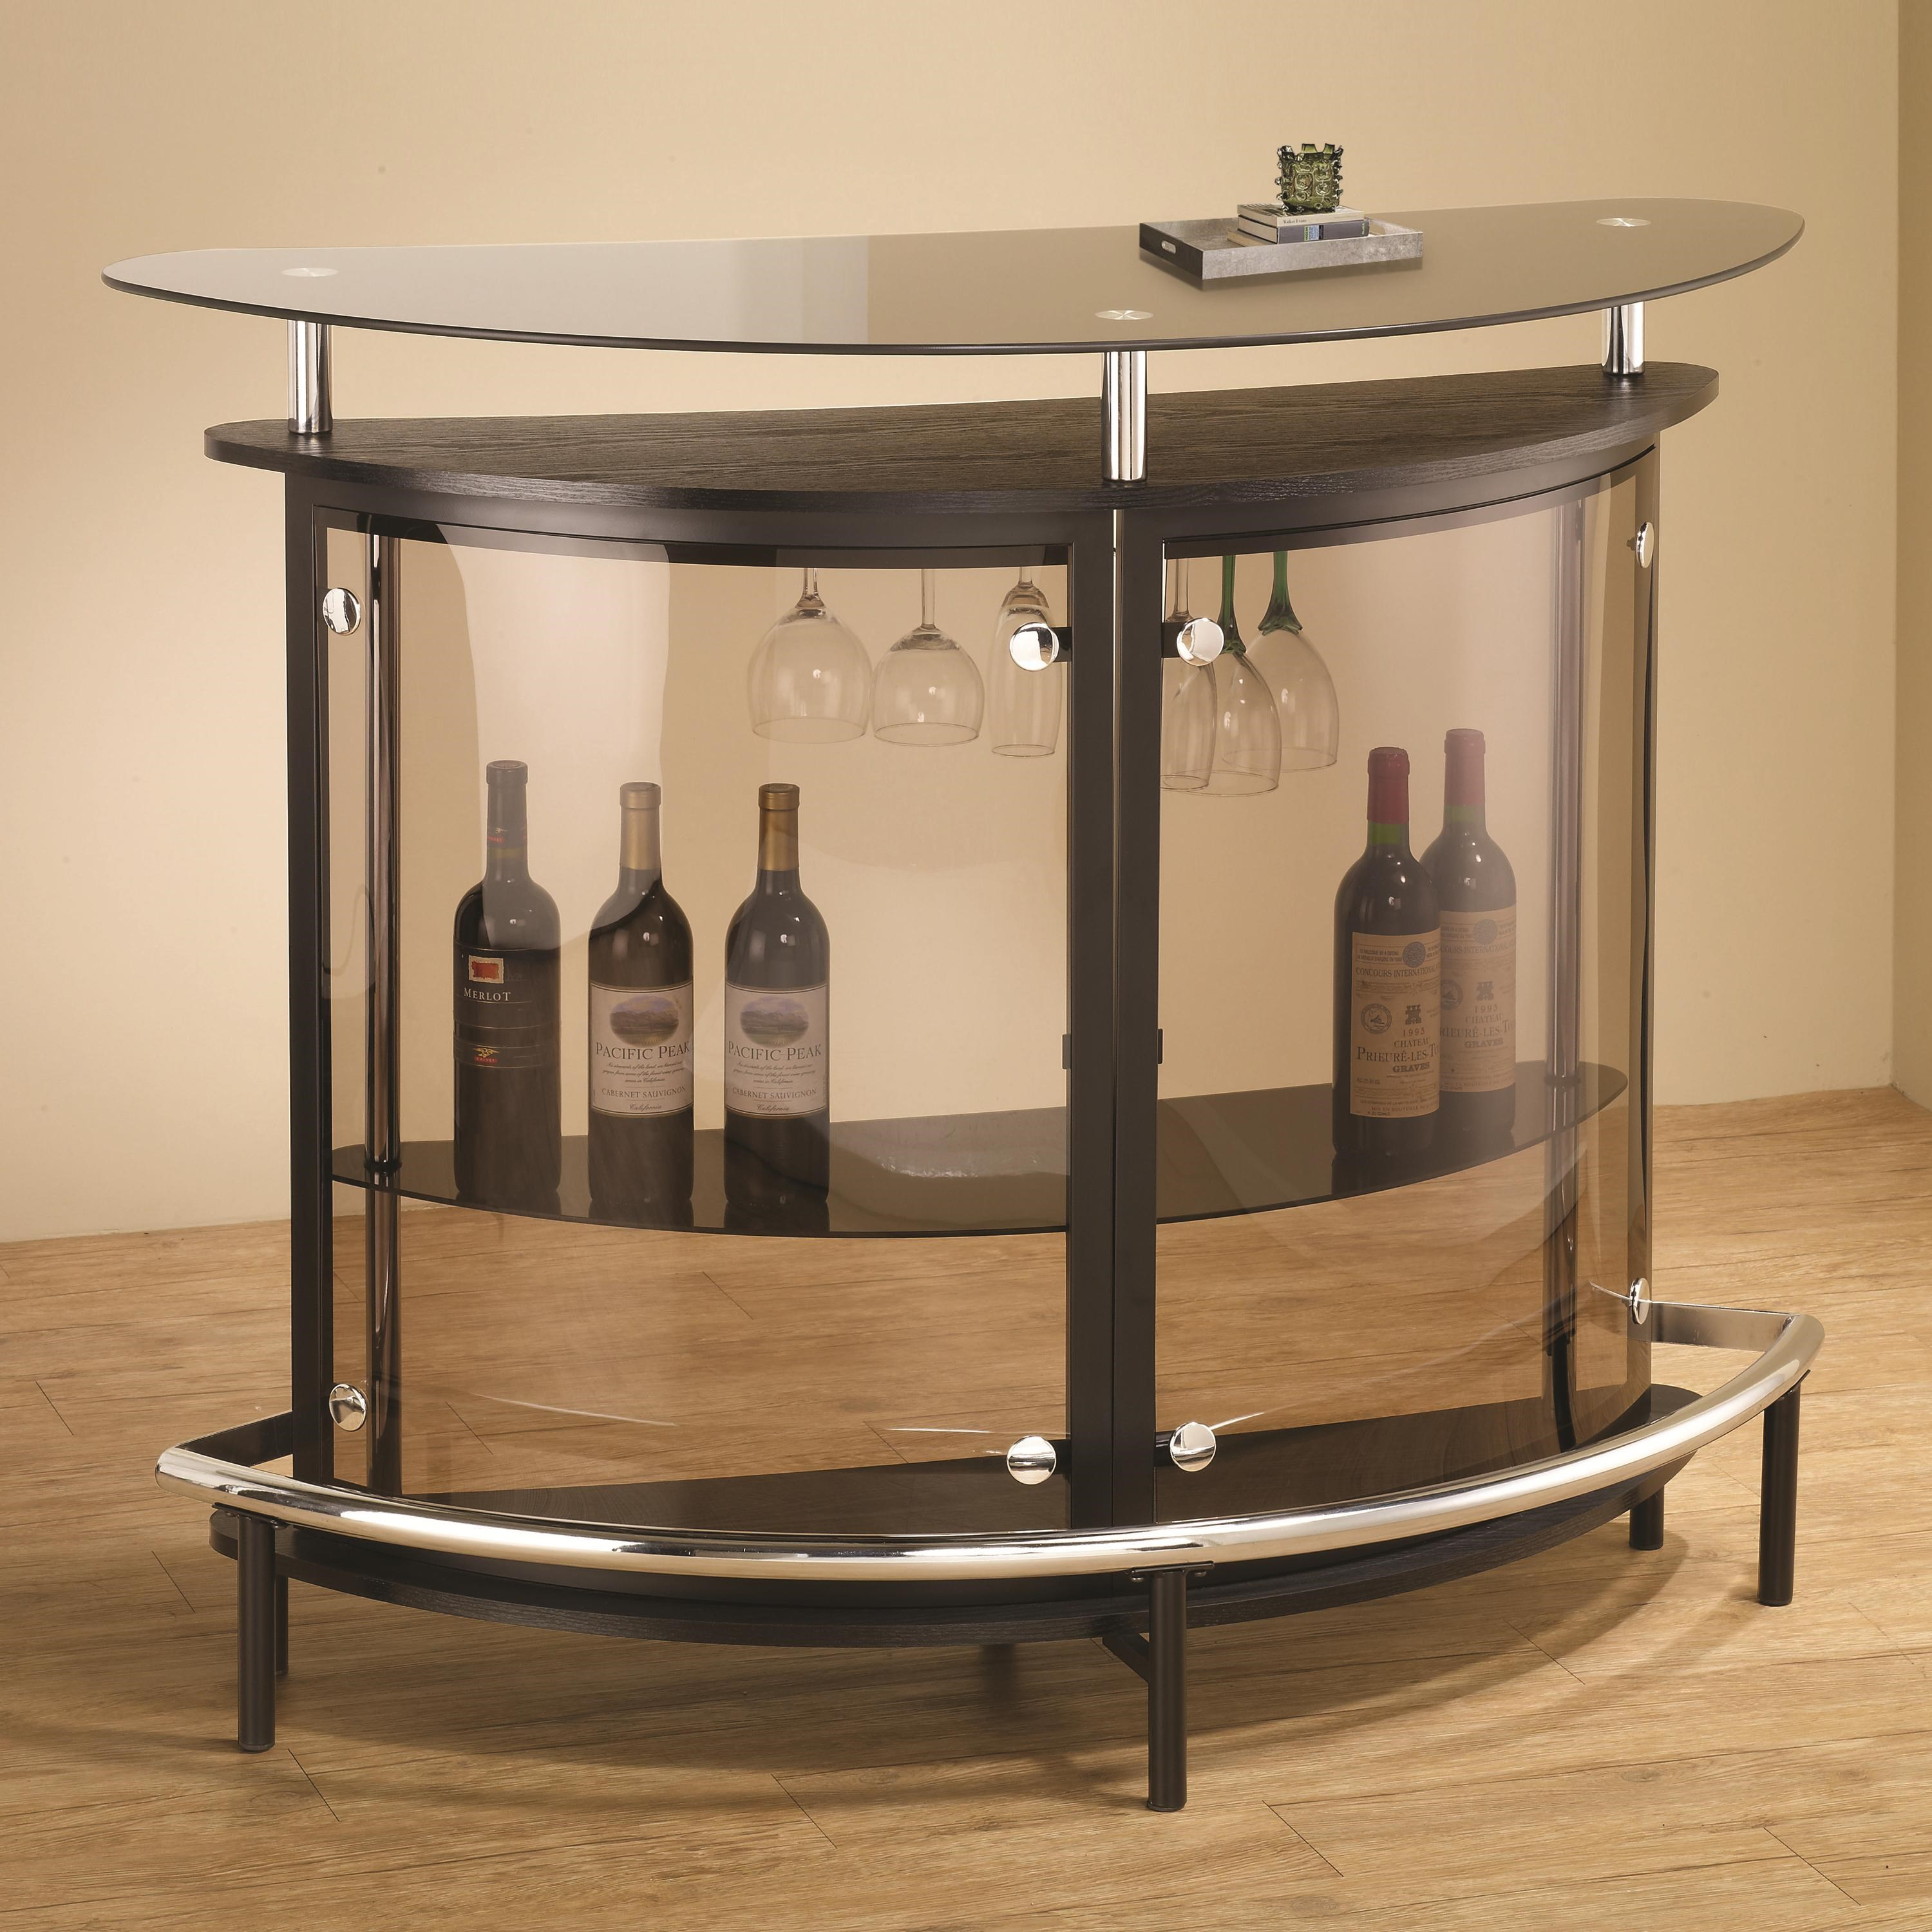 contemporary bar furniture. Coaster Bar Units And Tables Contemporary Unit With Smoked Acrylic Front - Fine Furniture I